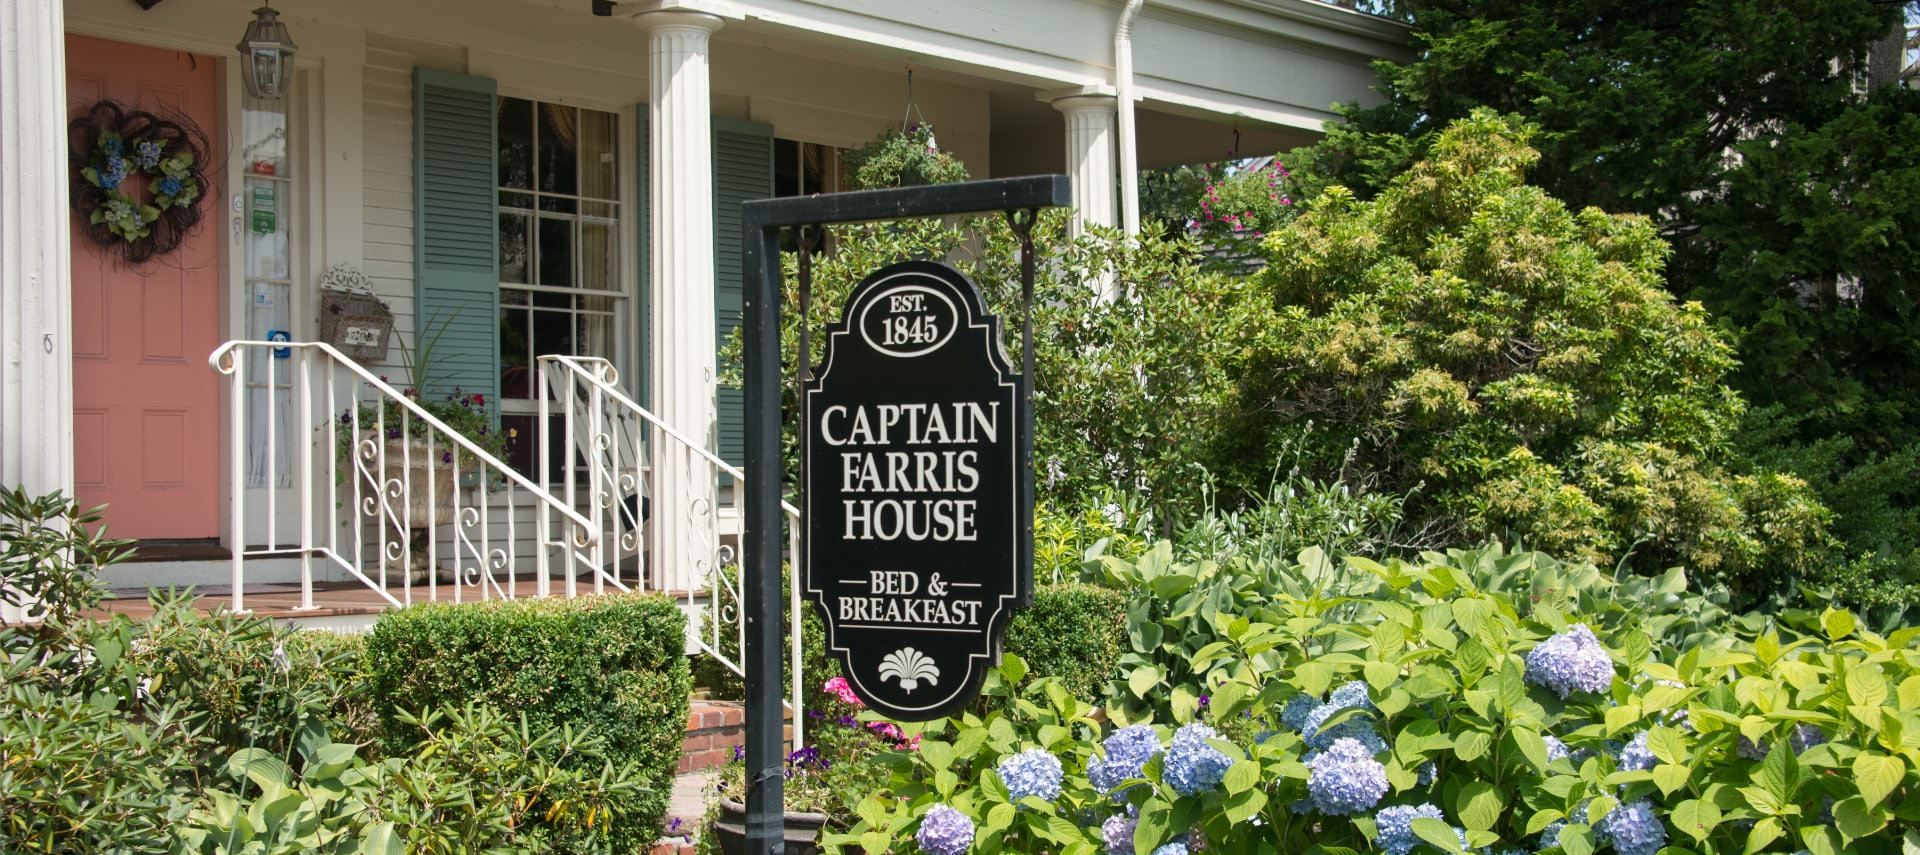 Front view of property with salmon-colored door and light turquoise shutters surrounded by shrubs, bushes, and flowers with a sign for Captain Farris House